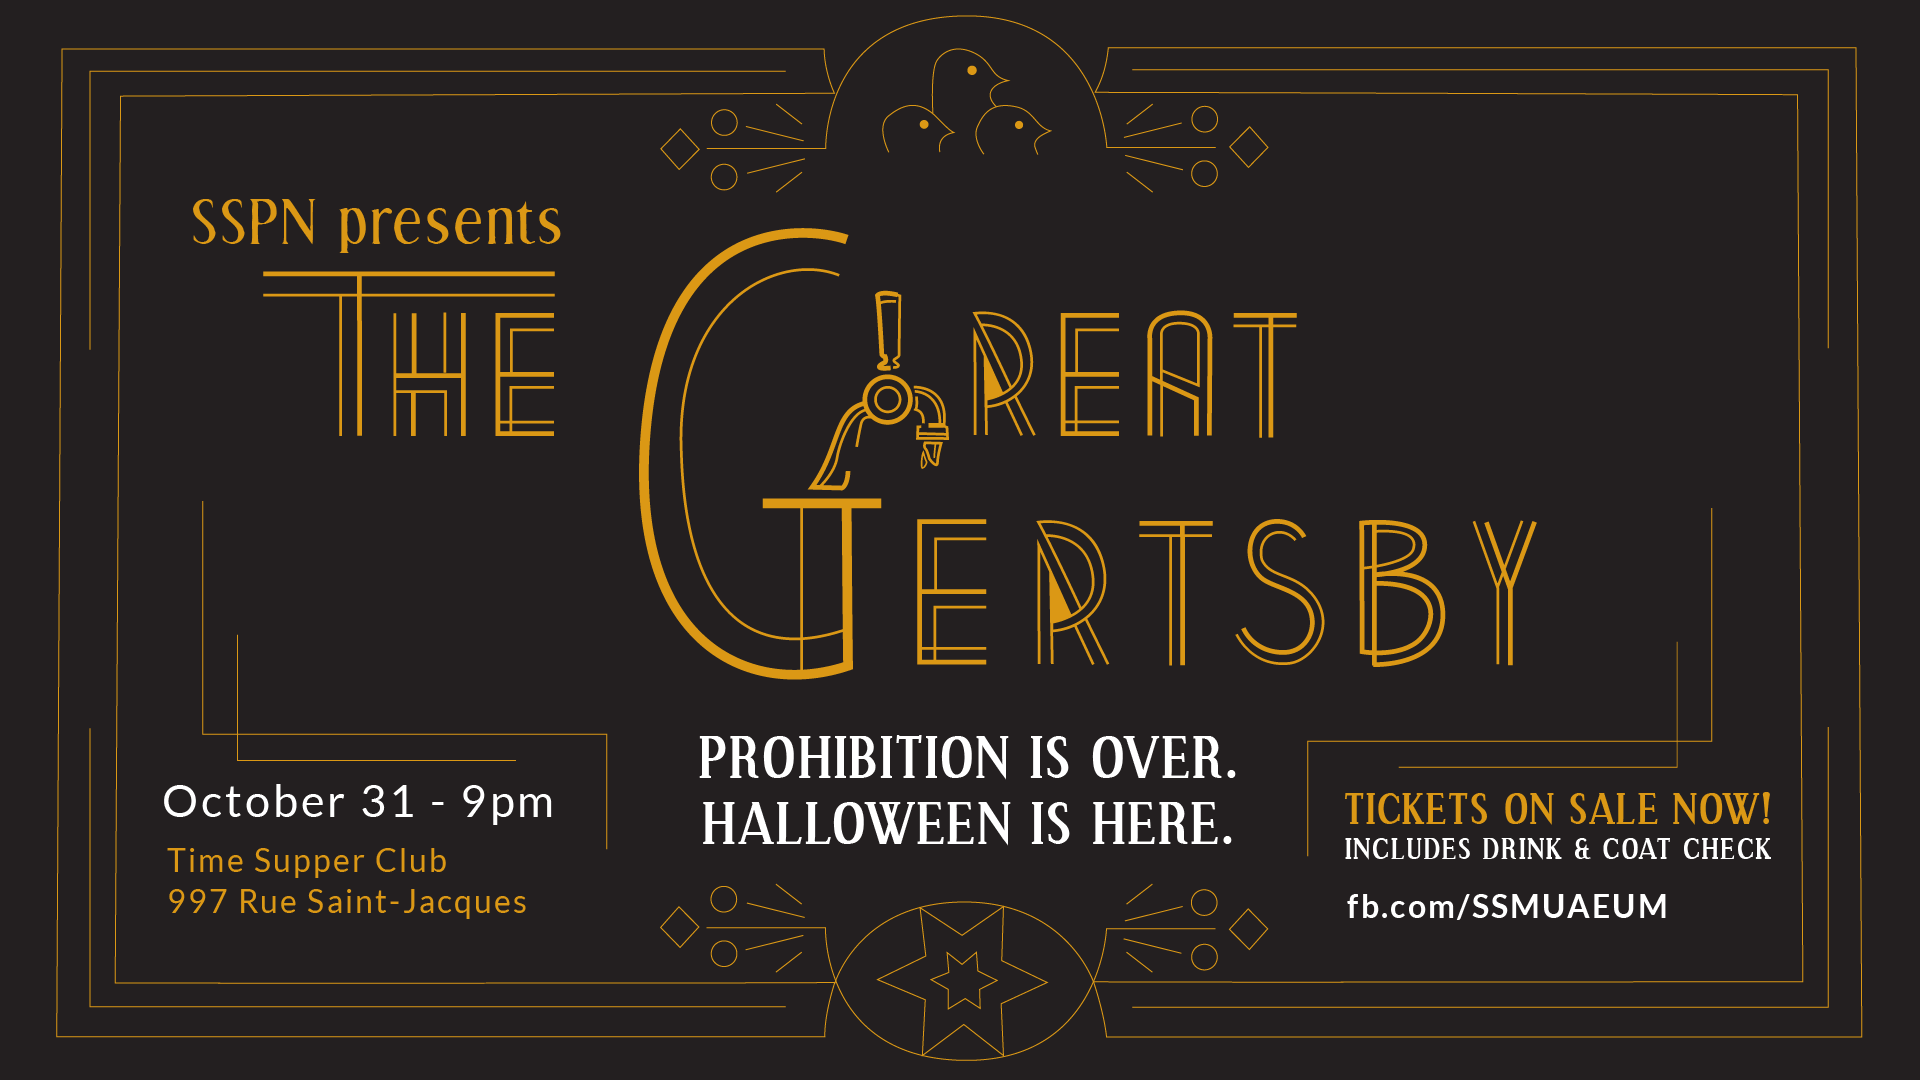 The Great Gertsby Halloween Party